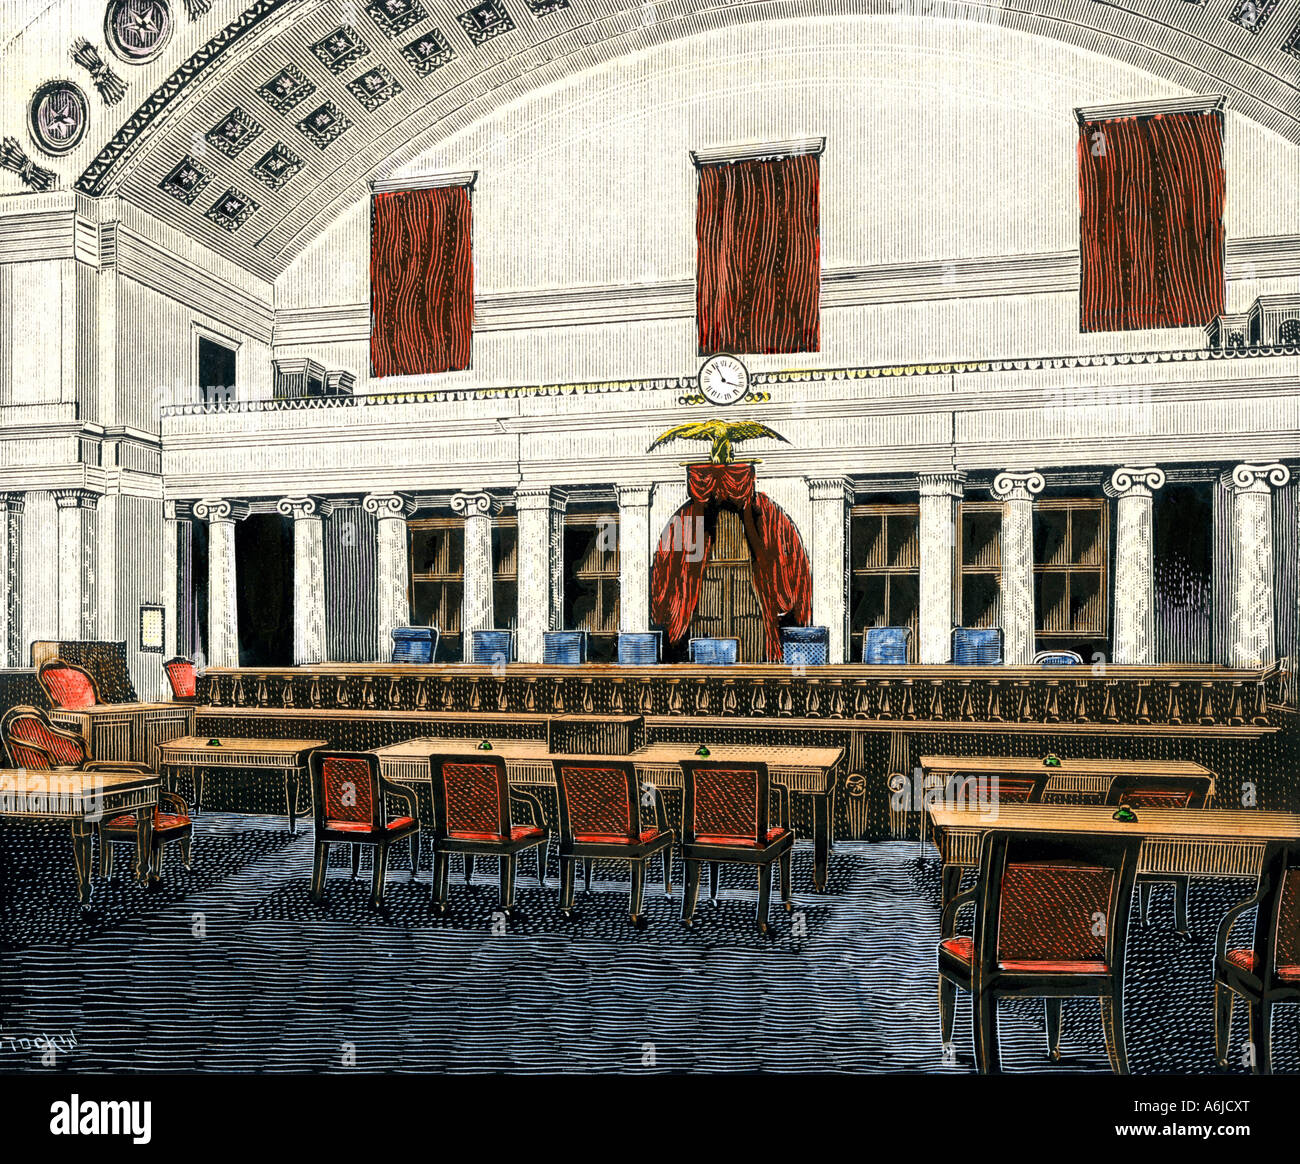 United States Supreme Court room 1890s. Hand-colored woodcut - Stock Image